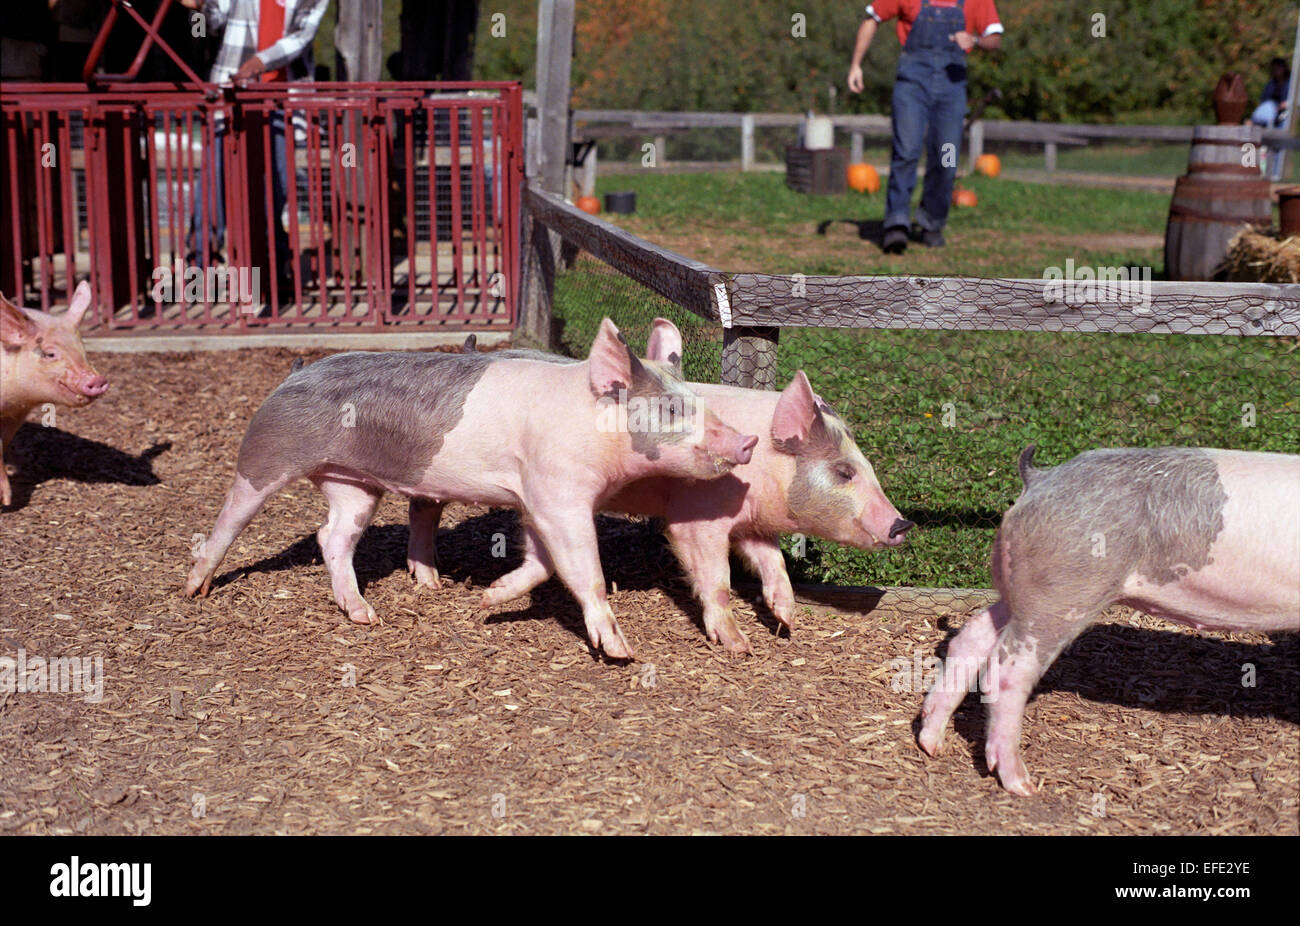 Pig racing event at Eckerts Farm in Illinois. - Stock Image